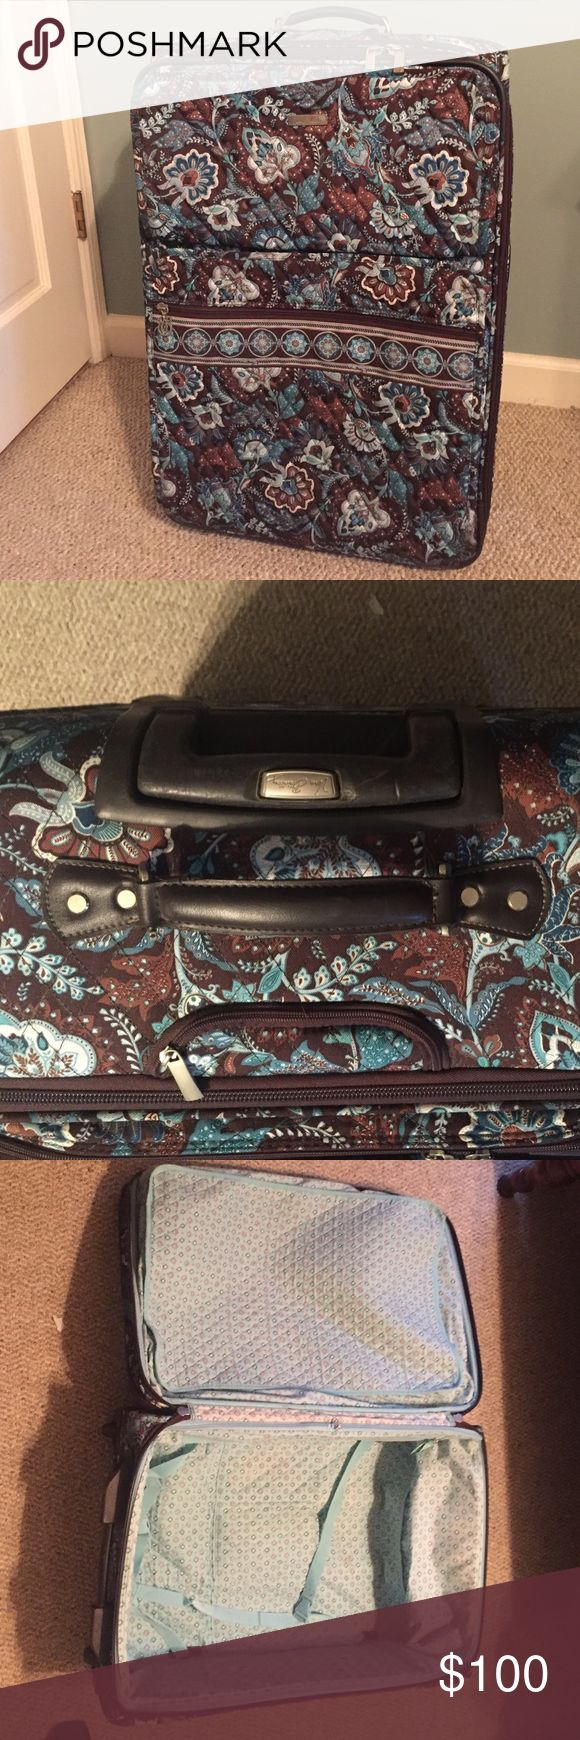 """Vera Bradley Luggage Vera Bradley Luggage/ Extra Large Suitcase. Color: Java Blue/ 20""""Lx 12""""W x26.5""""H. Great Preloved condition. Some scuffs and scratches near the wheels and handle. Nothing excessive, just normal wear. Holds a ton of stuff! Serious buyers only please. No trades. Vera Bradley Bags Travel Bags"""